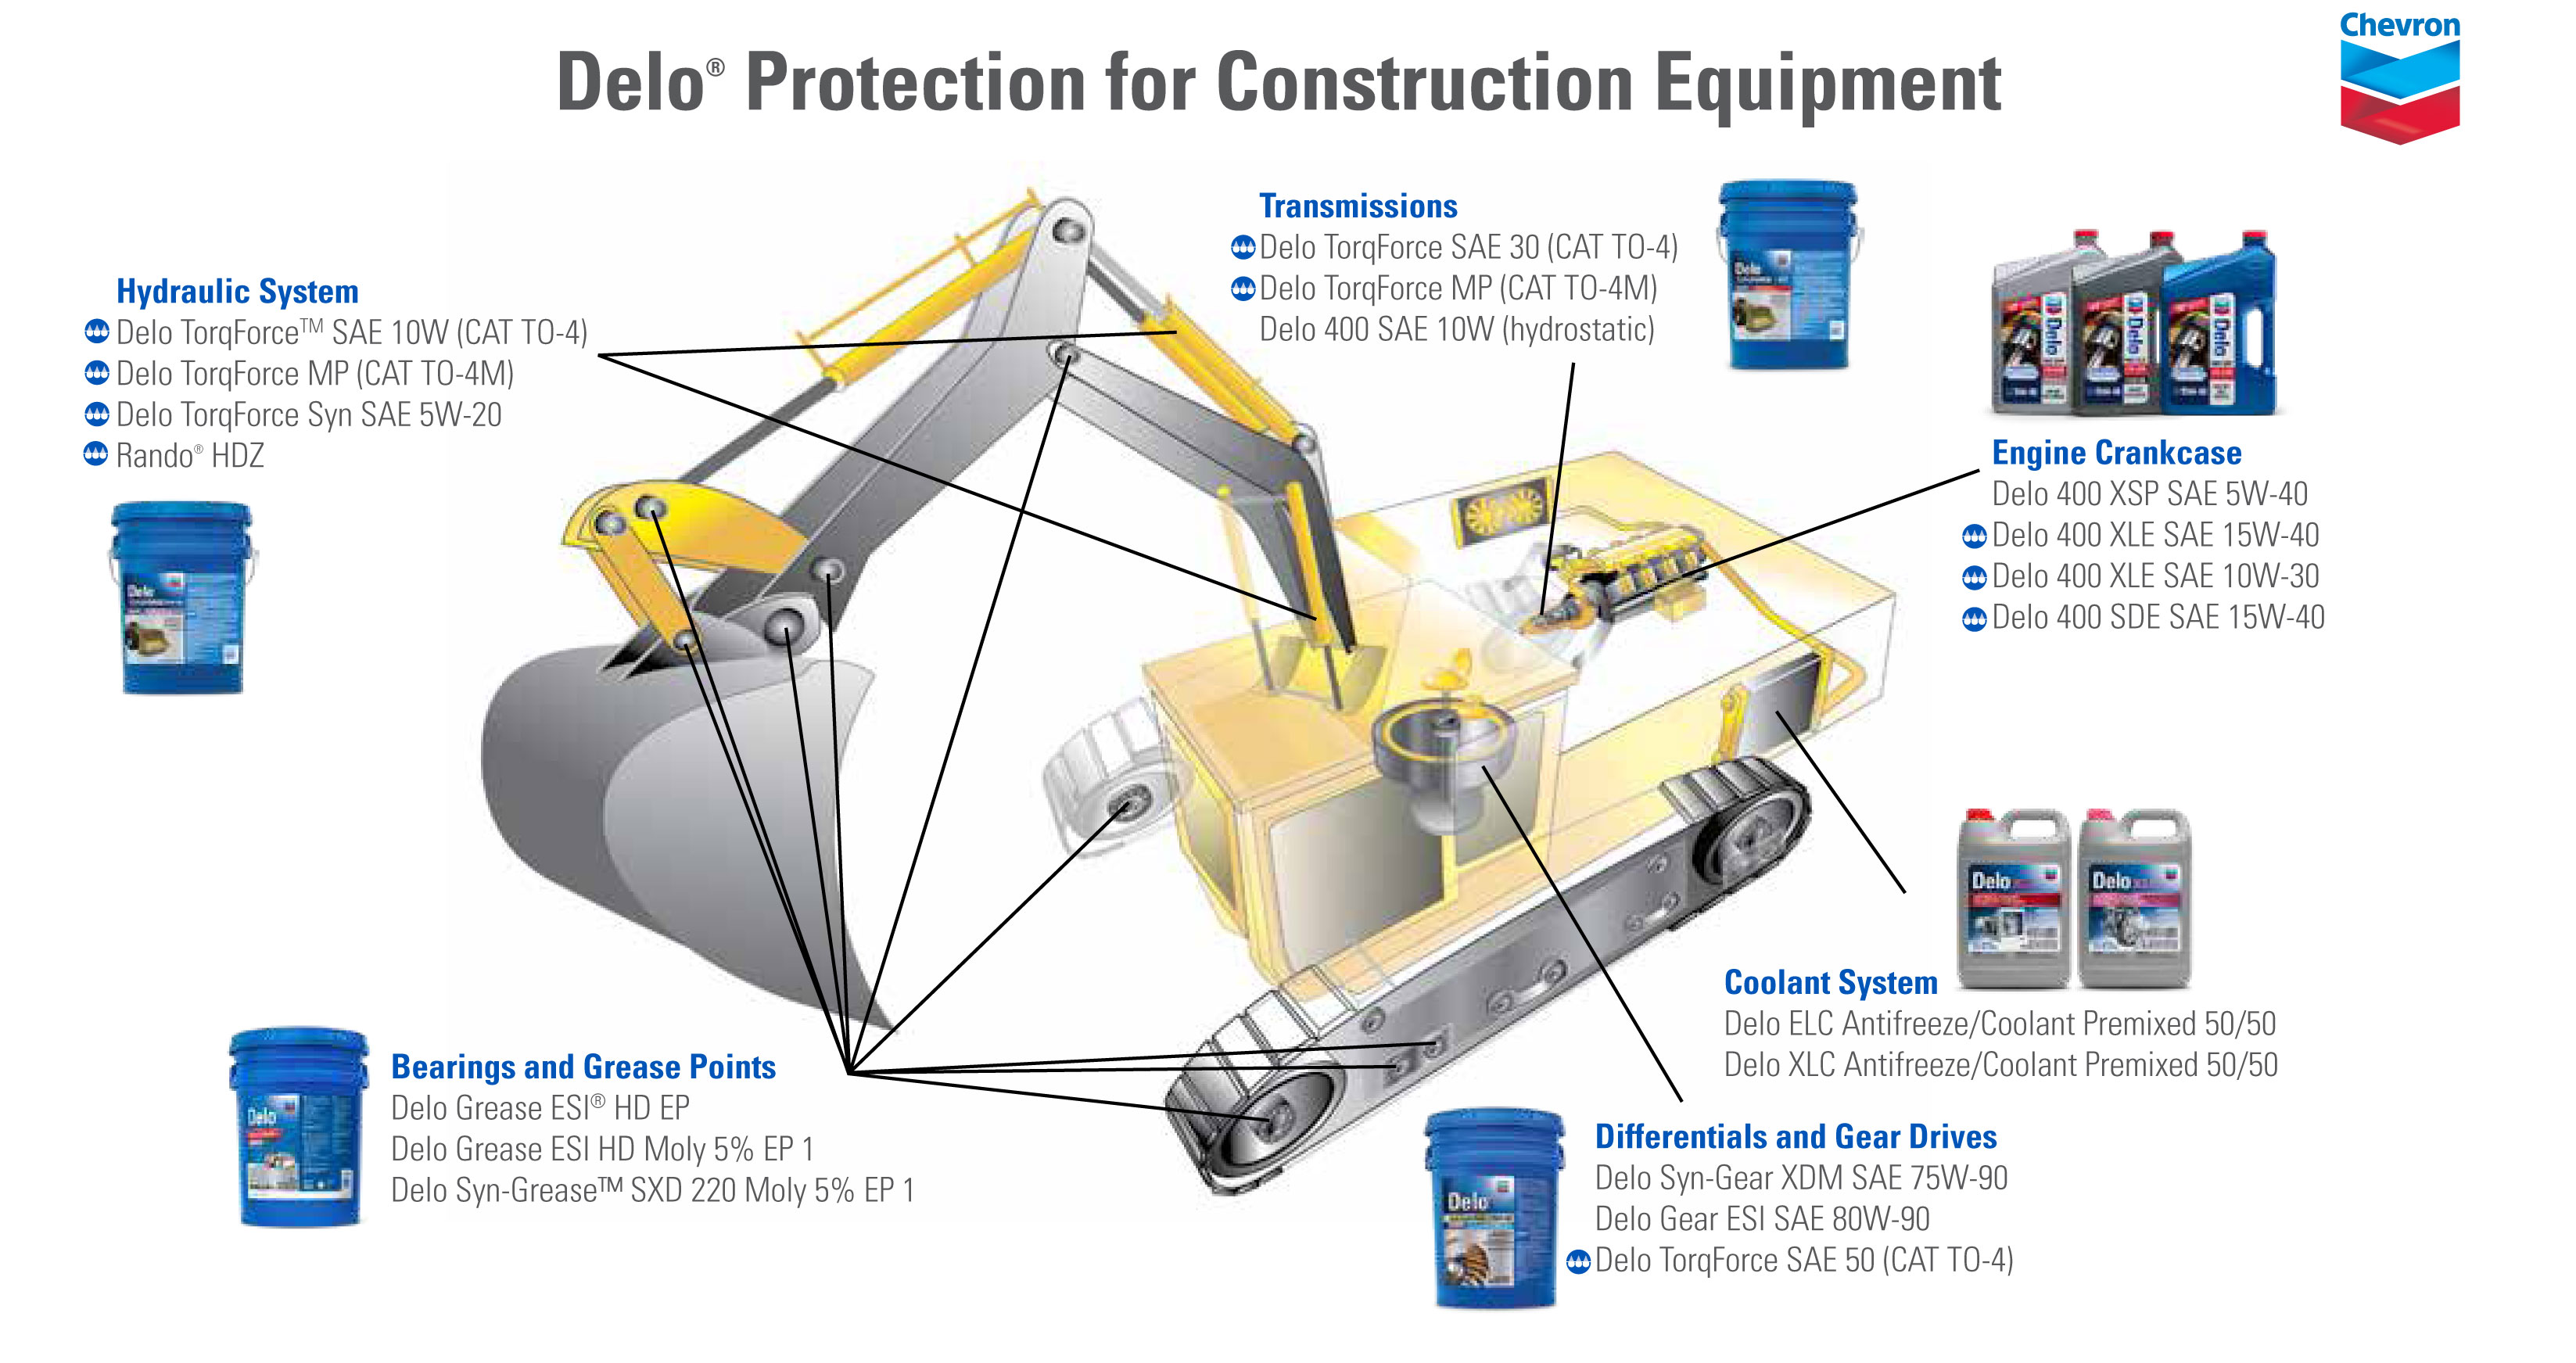 Delo-Protection-for-Construction-Equipment-Sutton-System-Sales